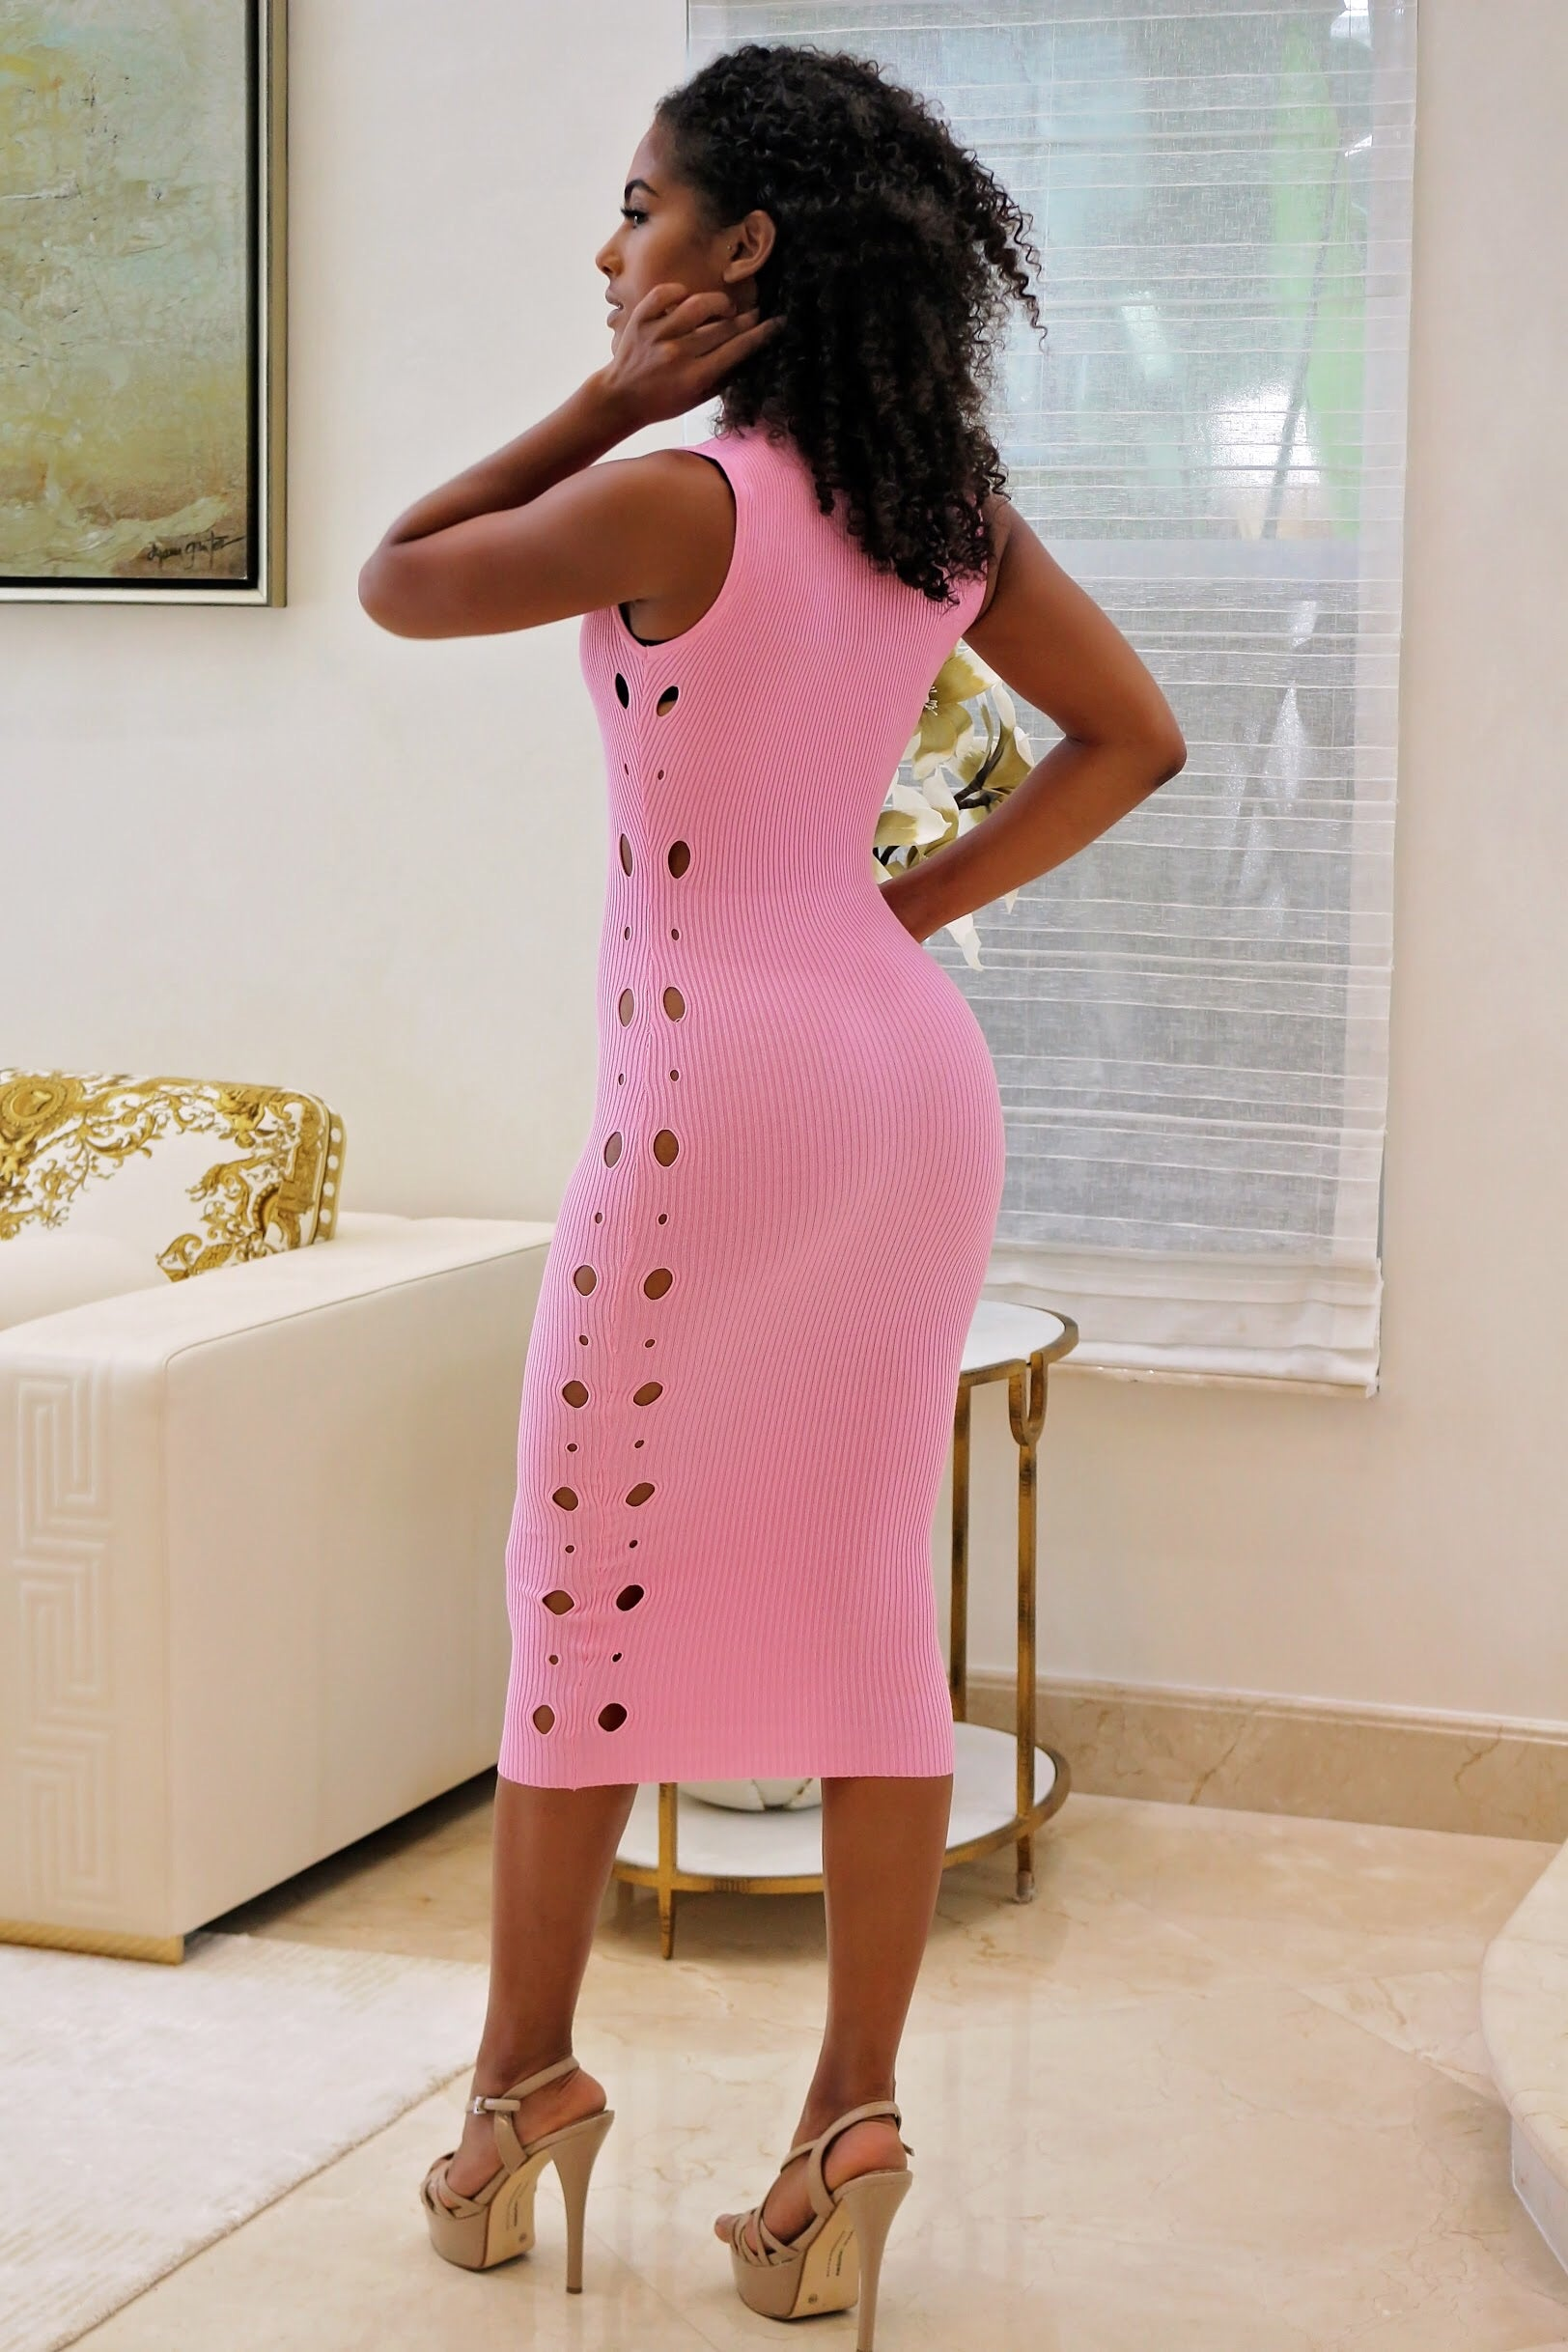 Babygirl Is On Fire Pink Midi Dress - Semai House Of fashion